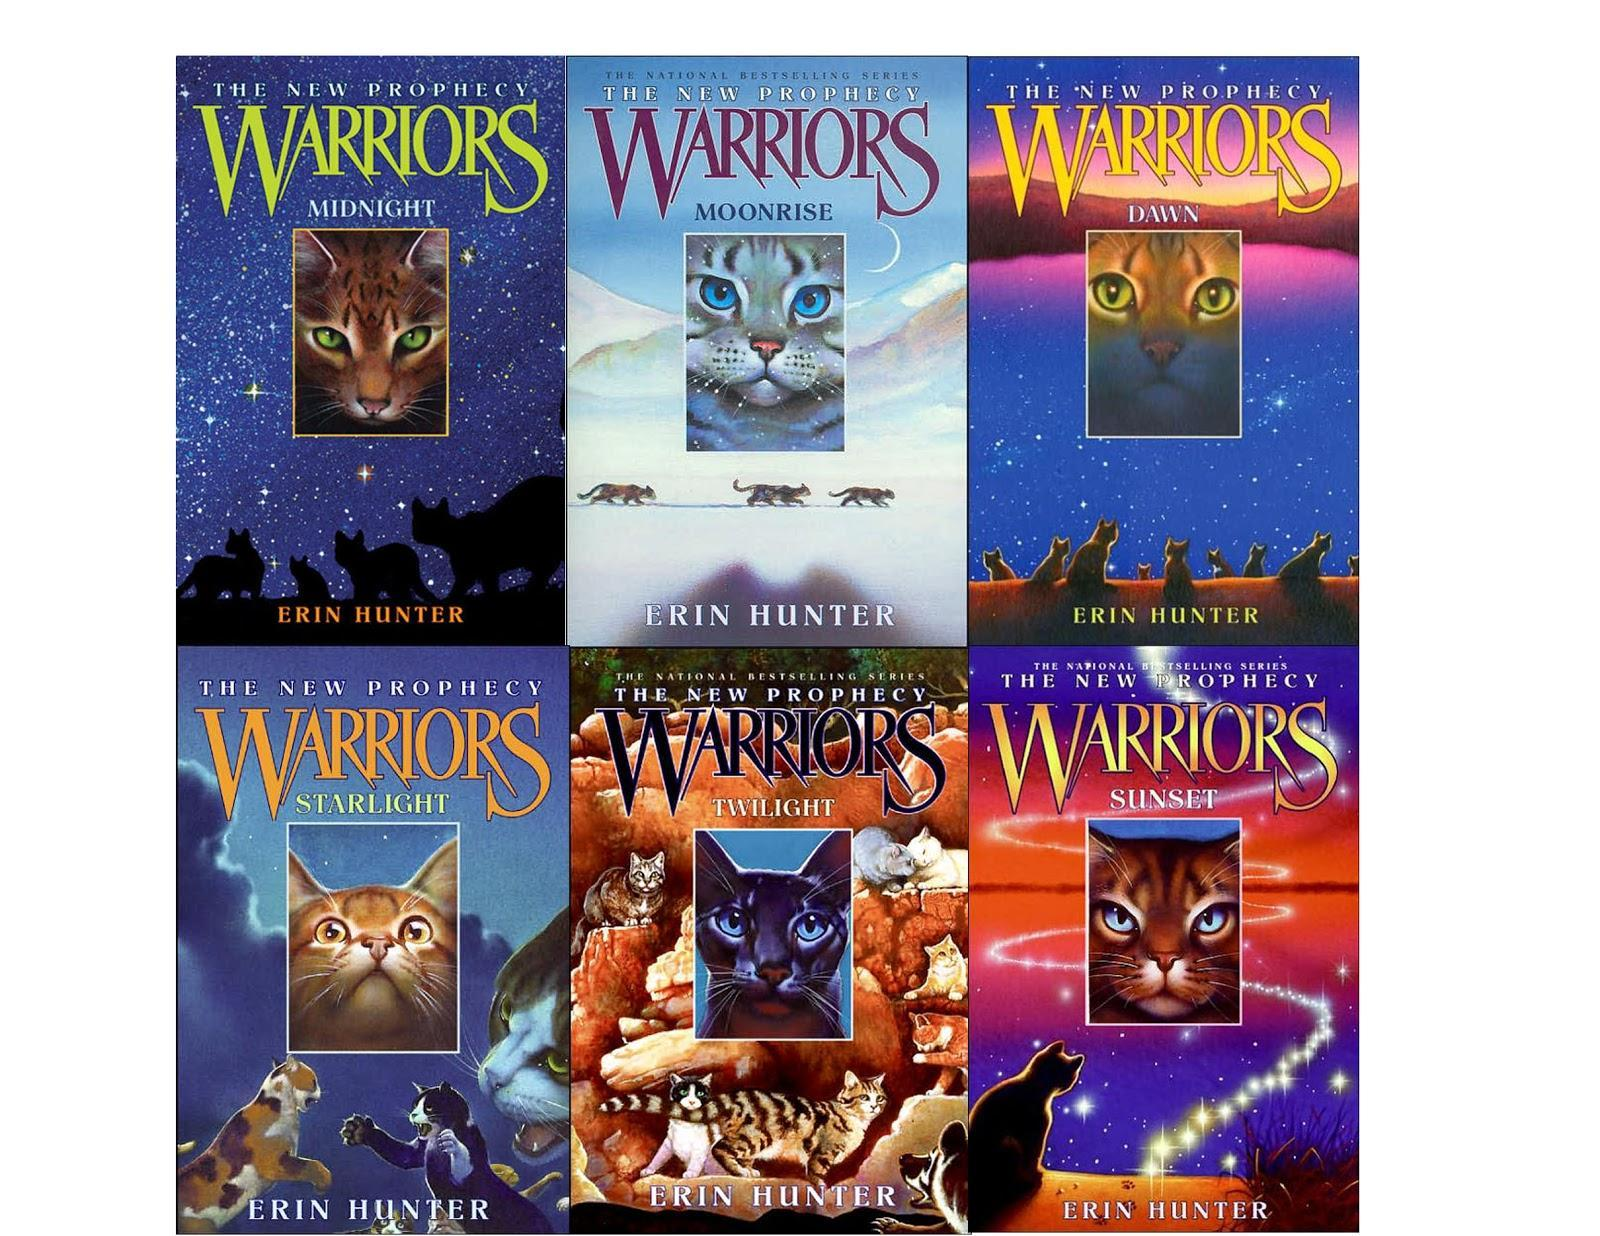 which warrior cat are you (the new prophecy)?